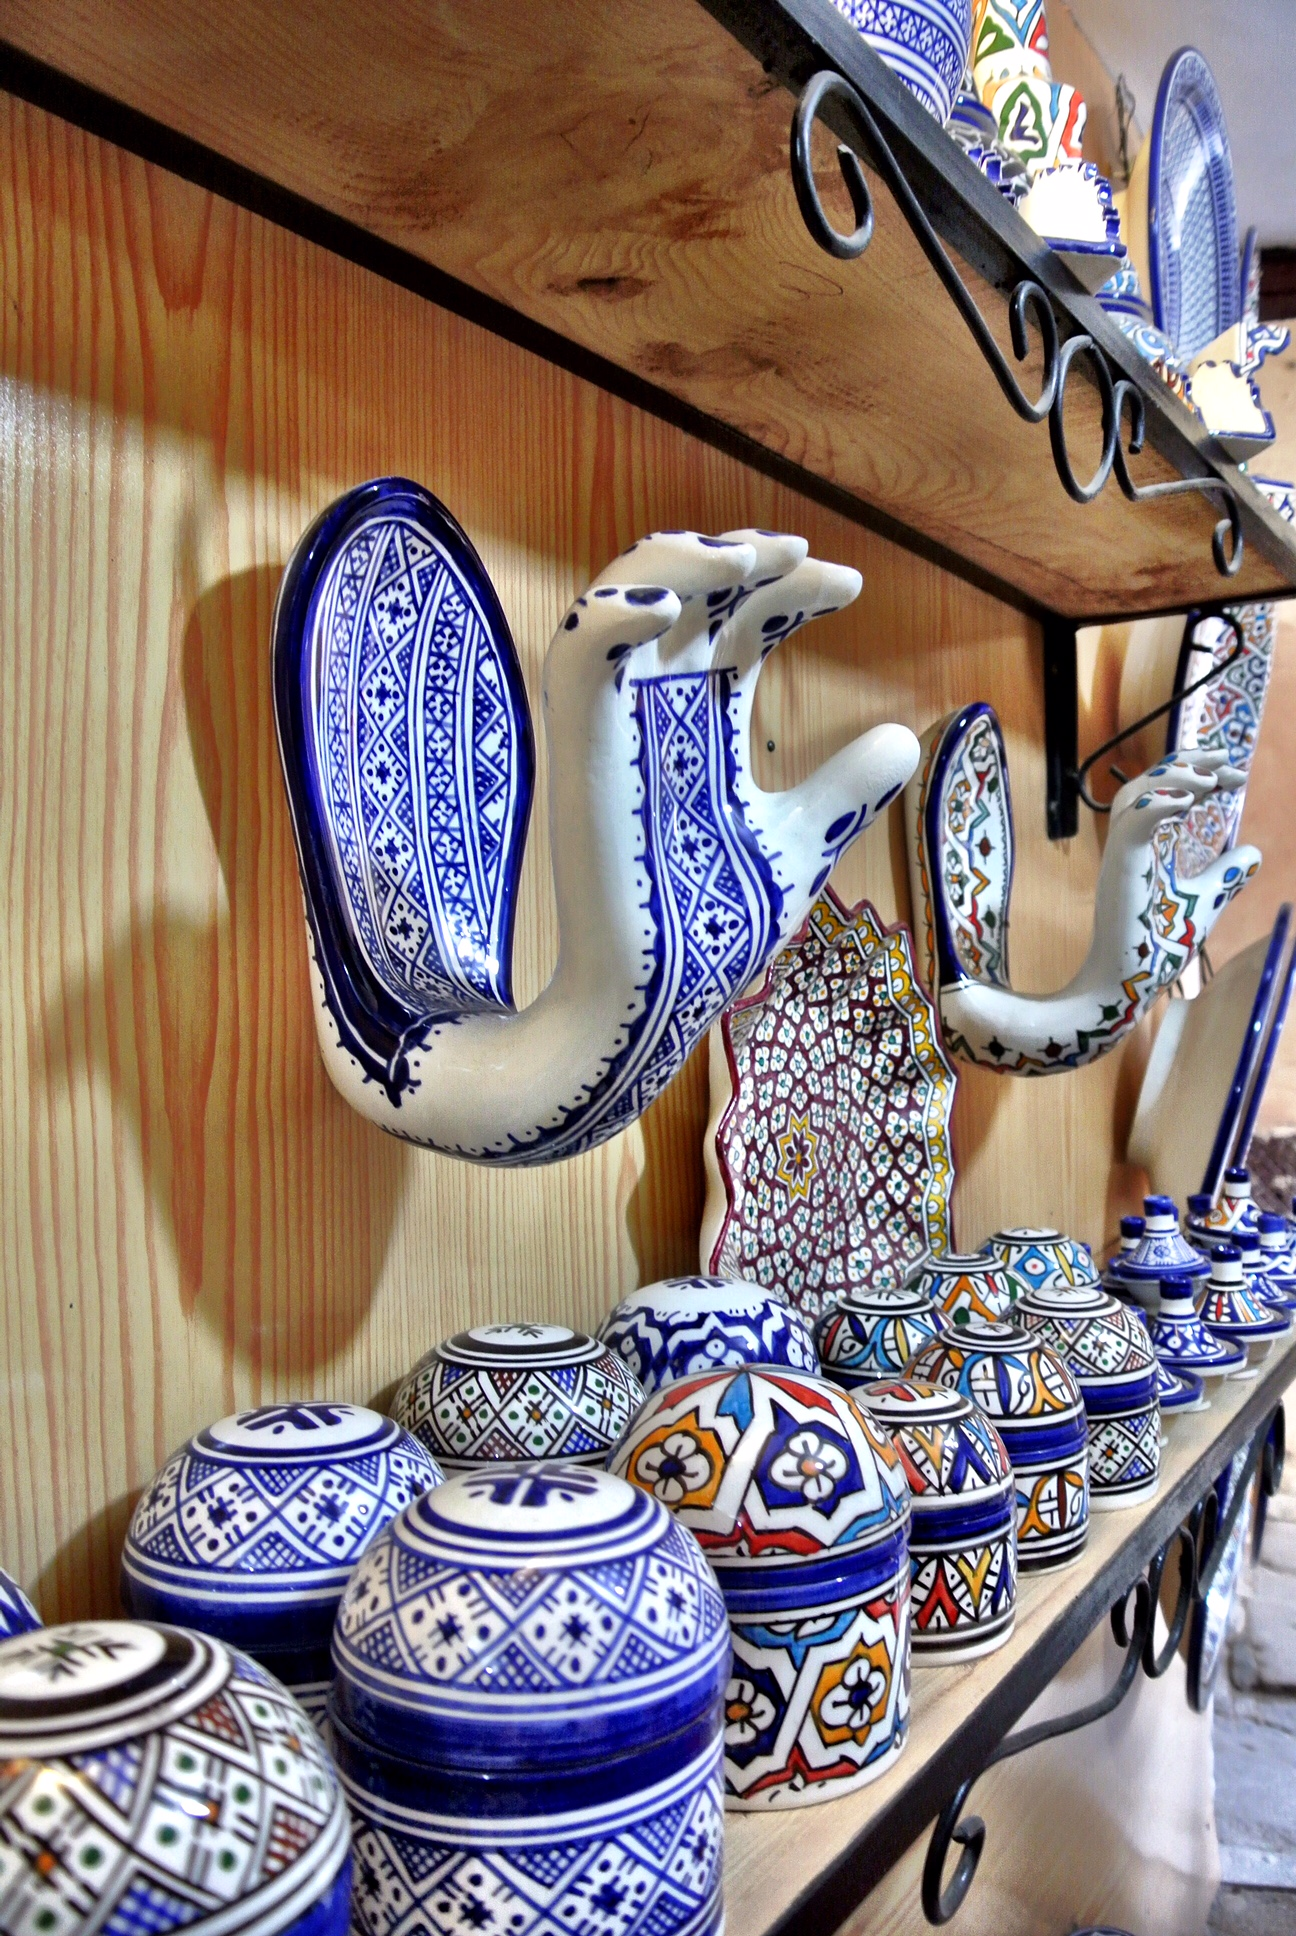 Fès Bleu Art is overflowing with handcrafted pottery made by local artisans